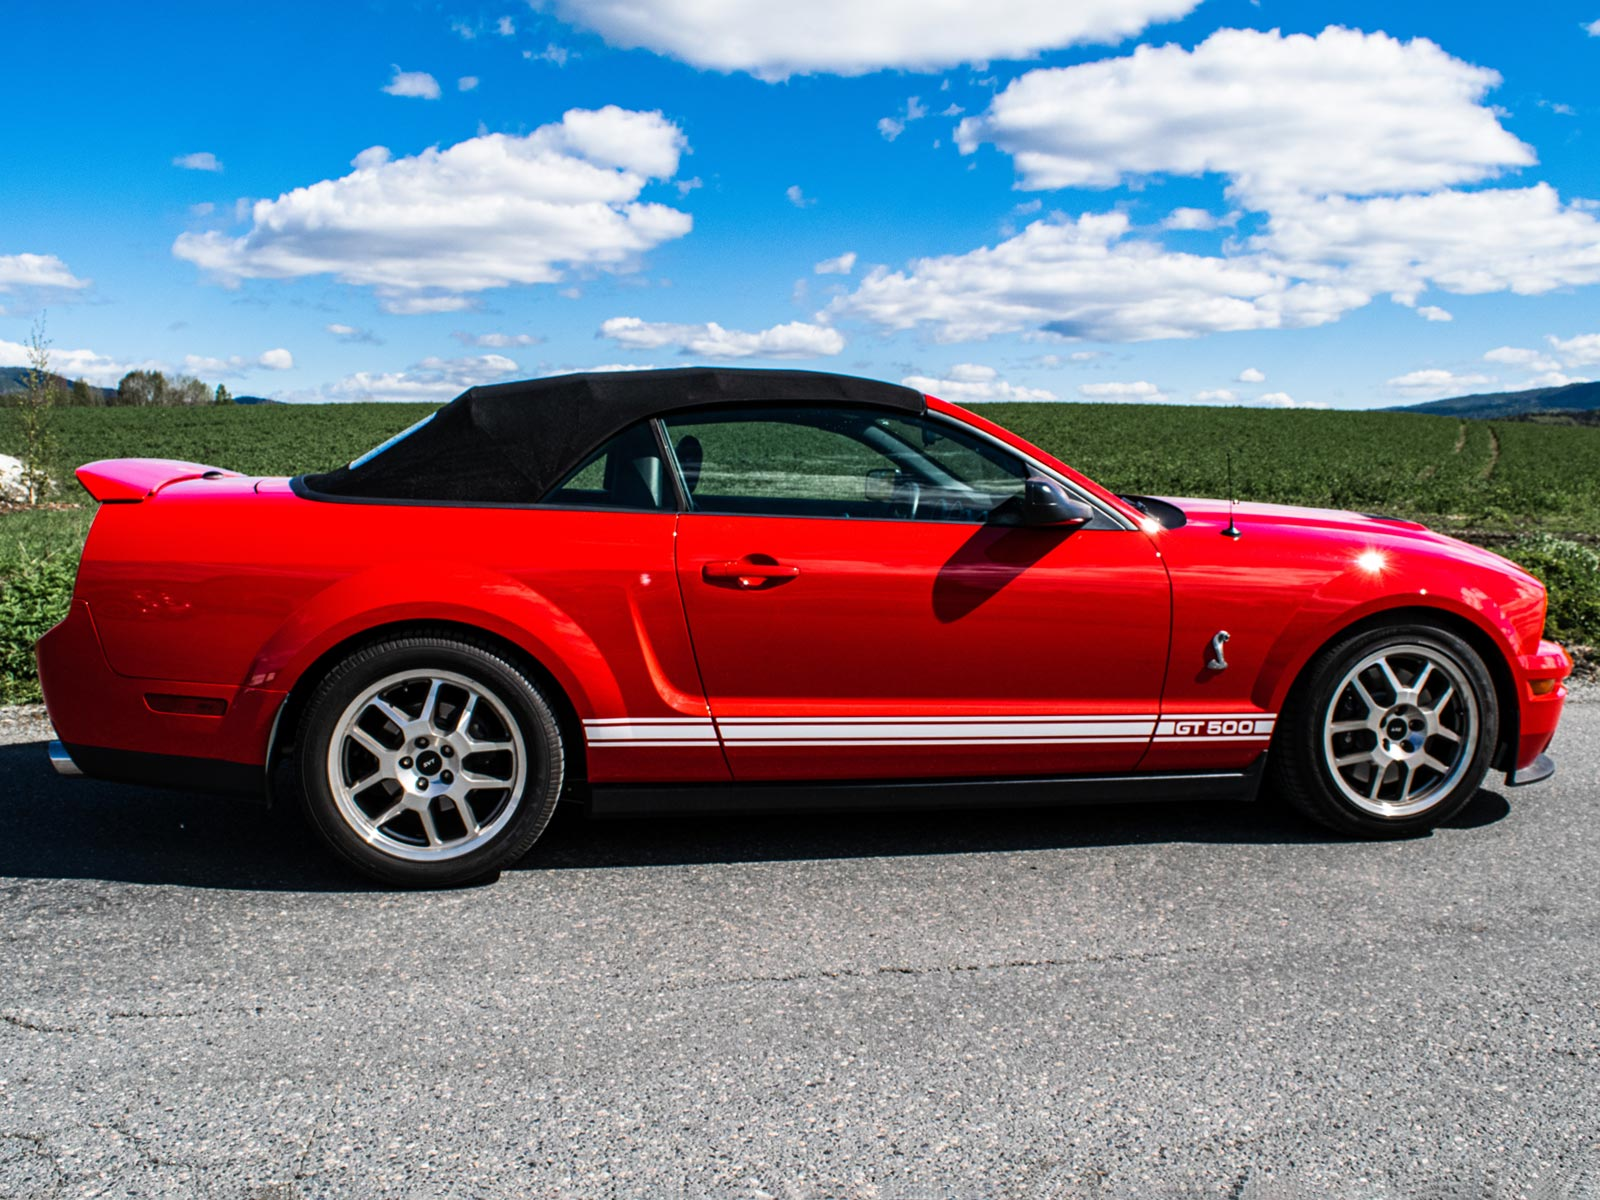 Ford Mustang Shelby.